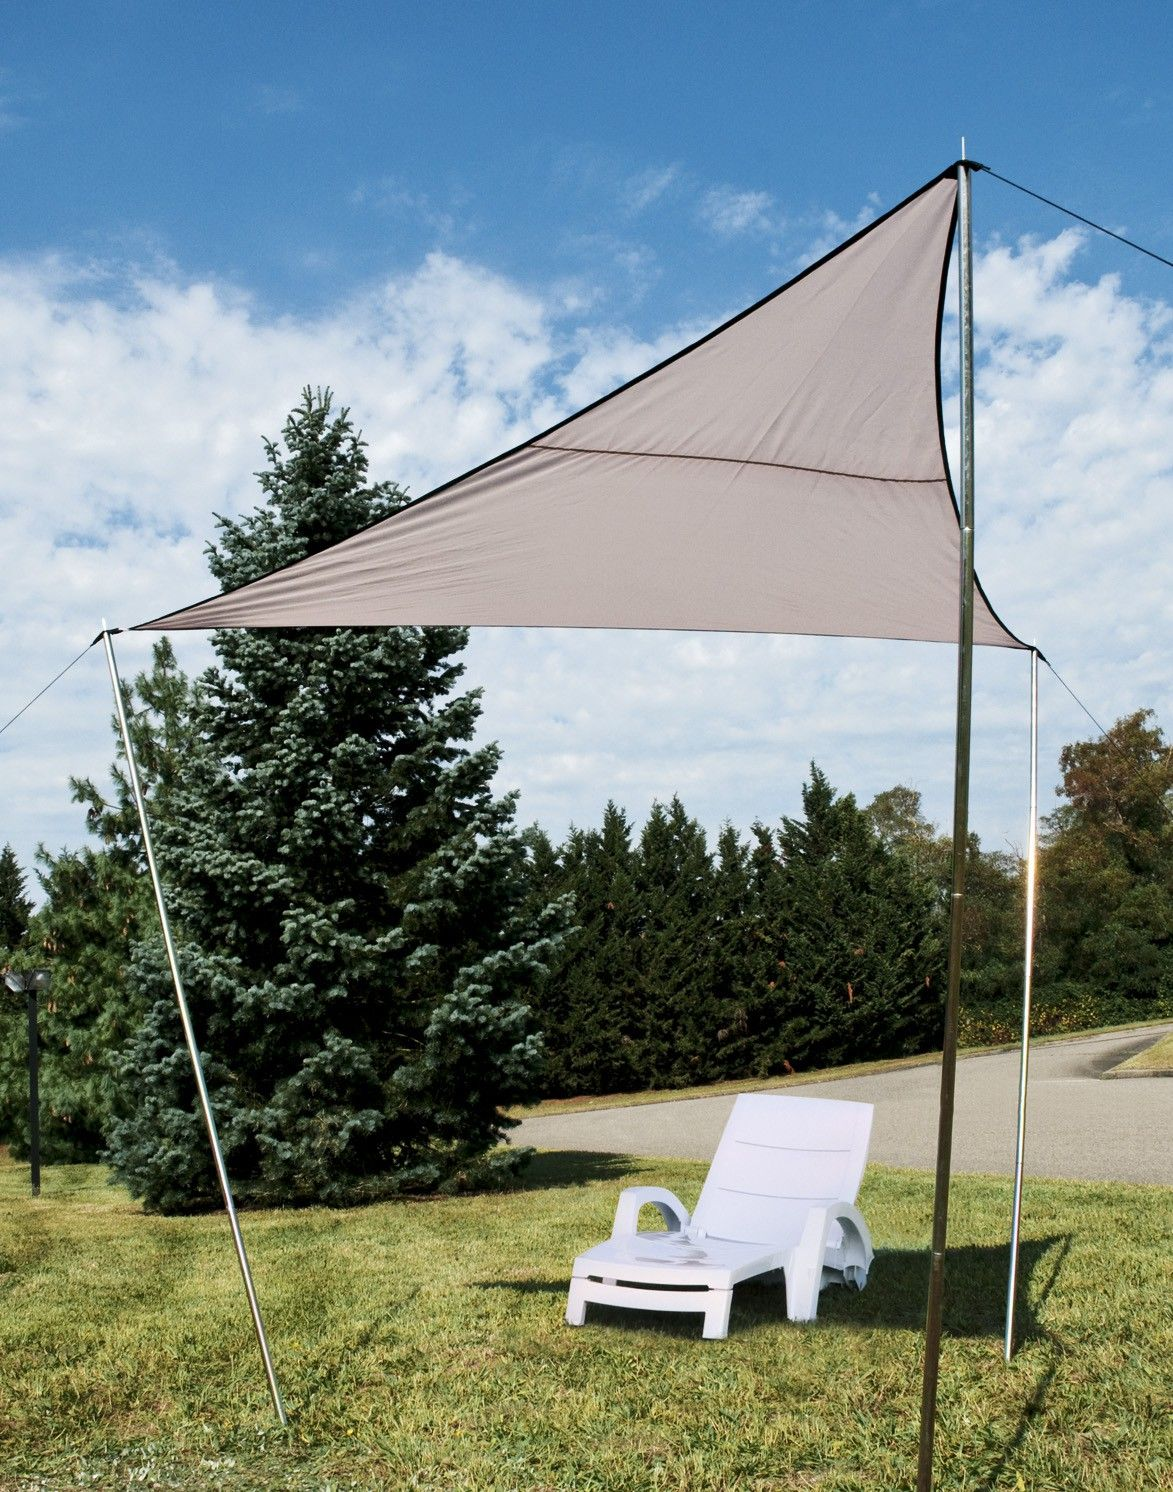 Meilleur Voile D Ombrage voile d'ombrage triangulaire 3 x 3 m | voile ombrage, voile